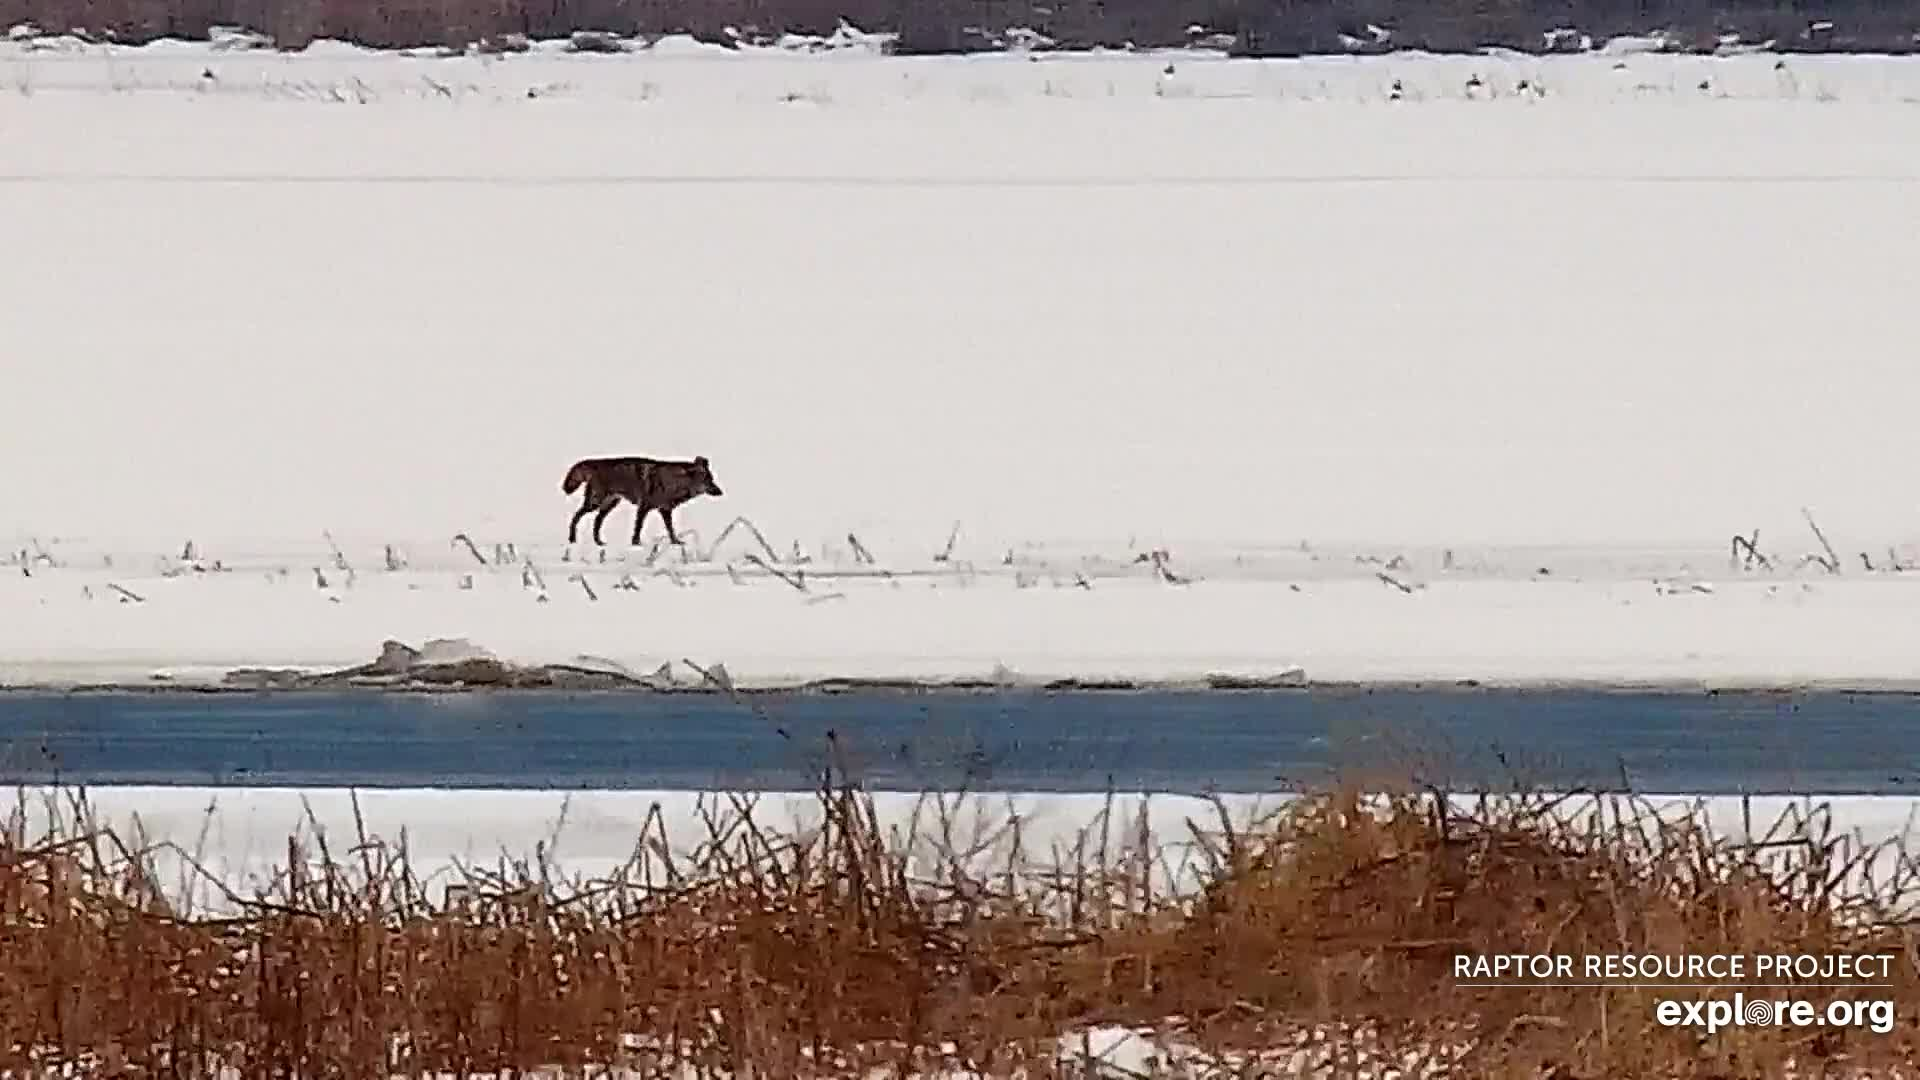 January 26, 2020: Coyotes on the Flyway